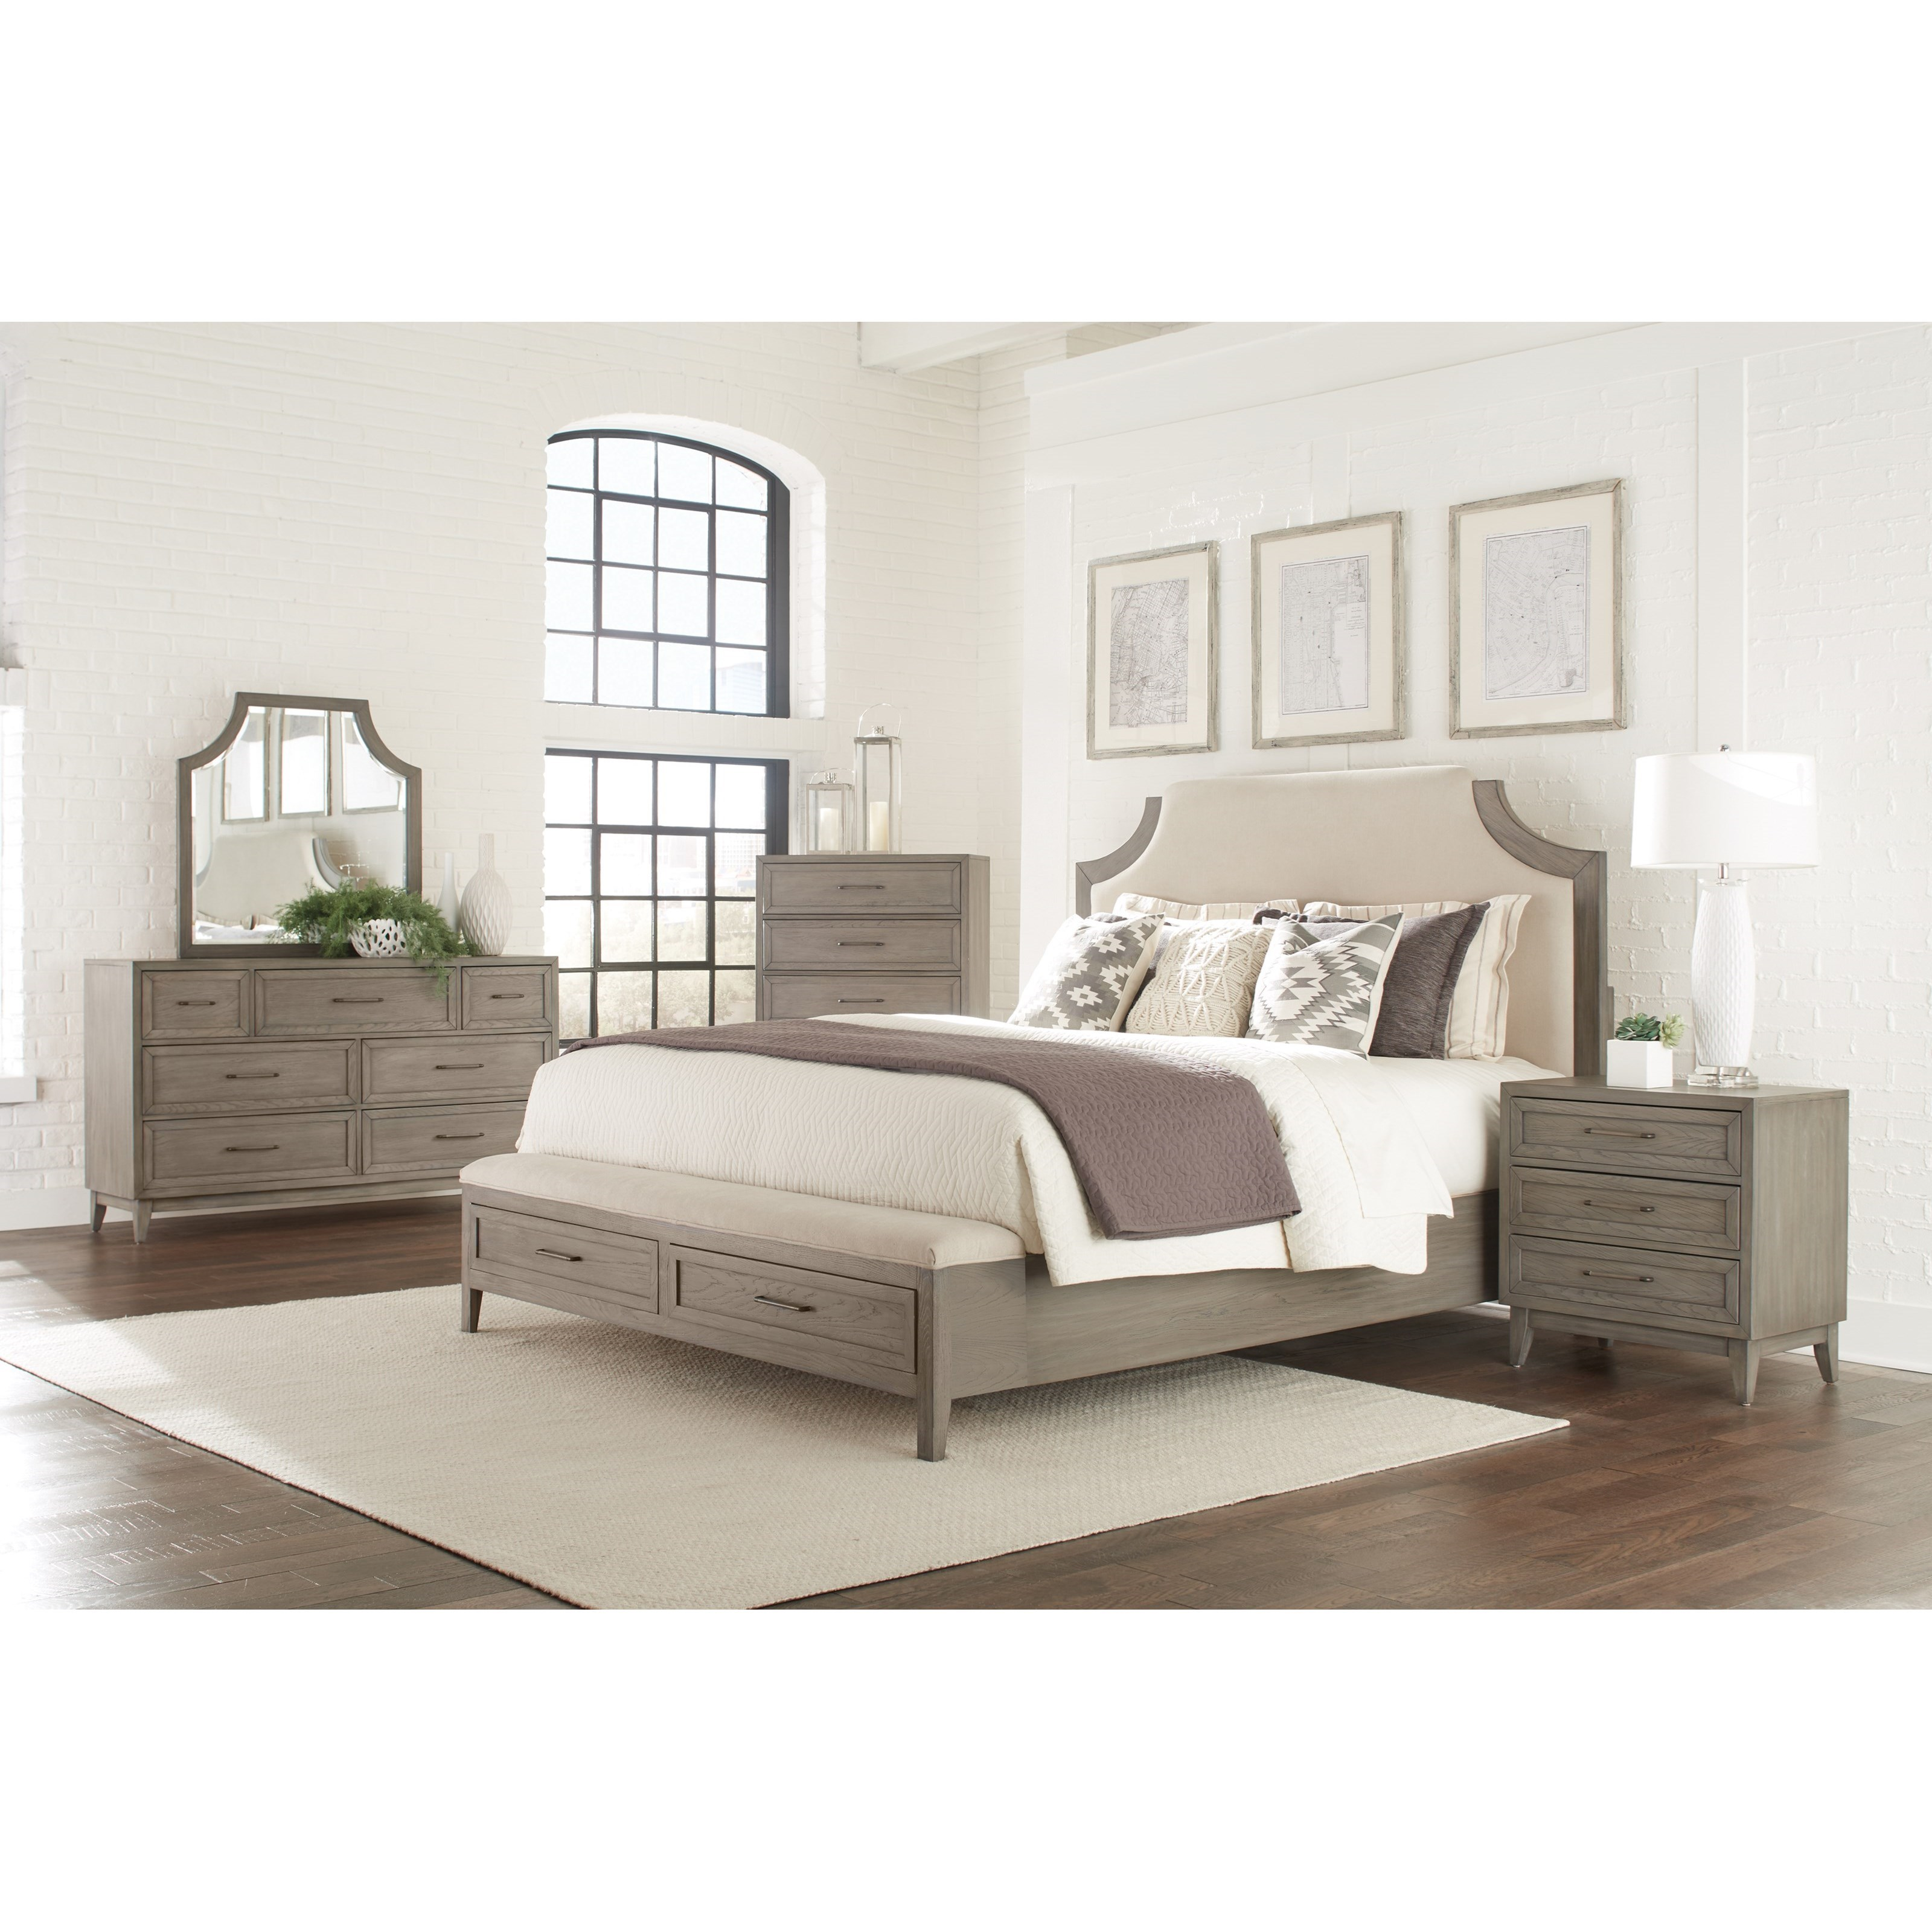 bedroom desk shape with drawers l curved collections castlewood riverside bhf item stuckey furniture corner